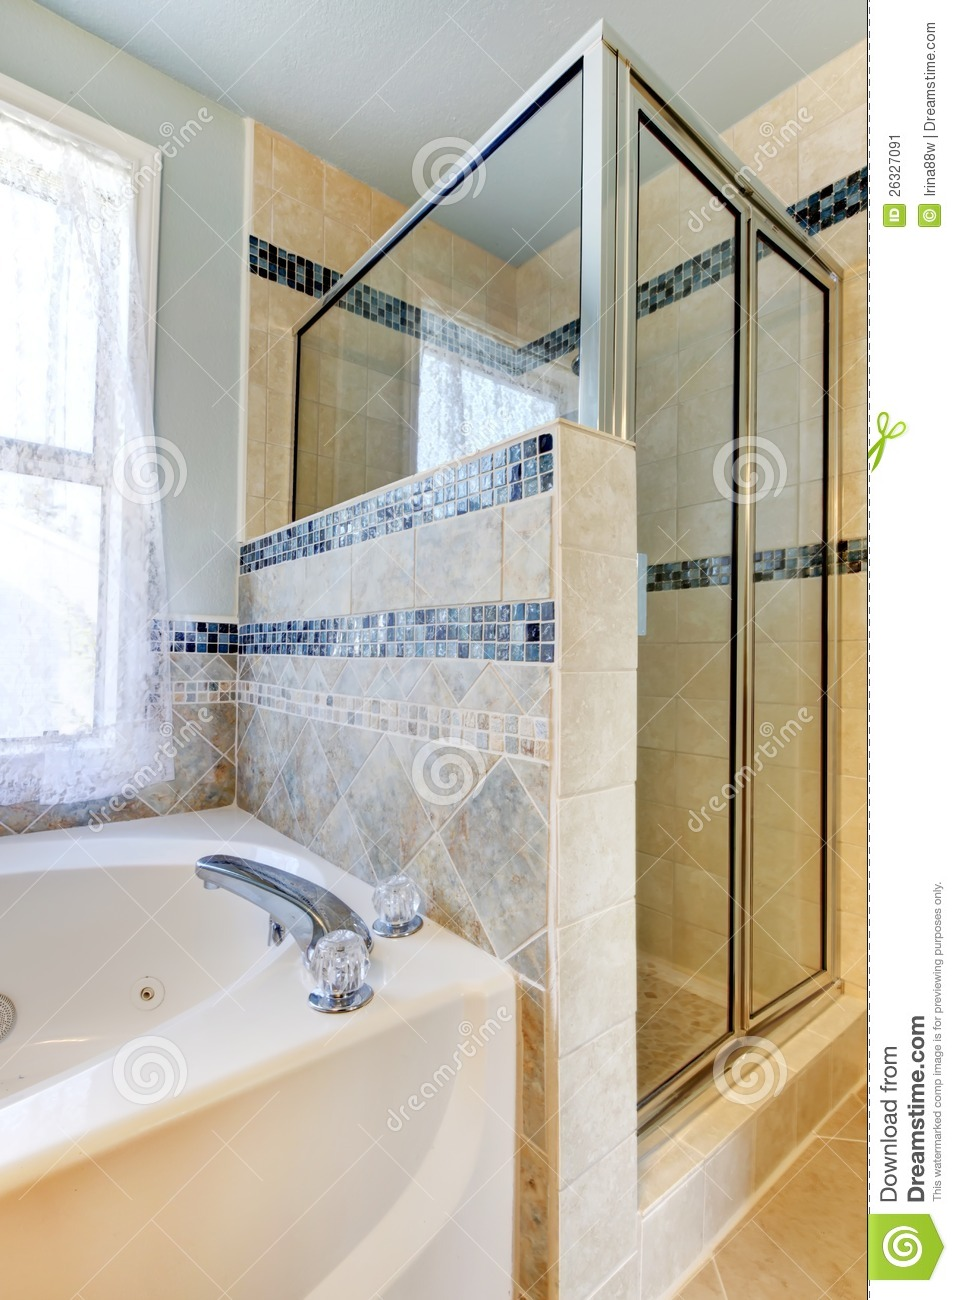 shower with beige and blue tiles and white tub stock. Black Bedroom Furniture Sets. Home Design Ideas